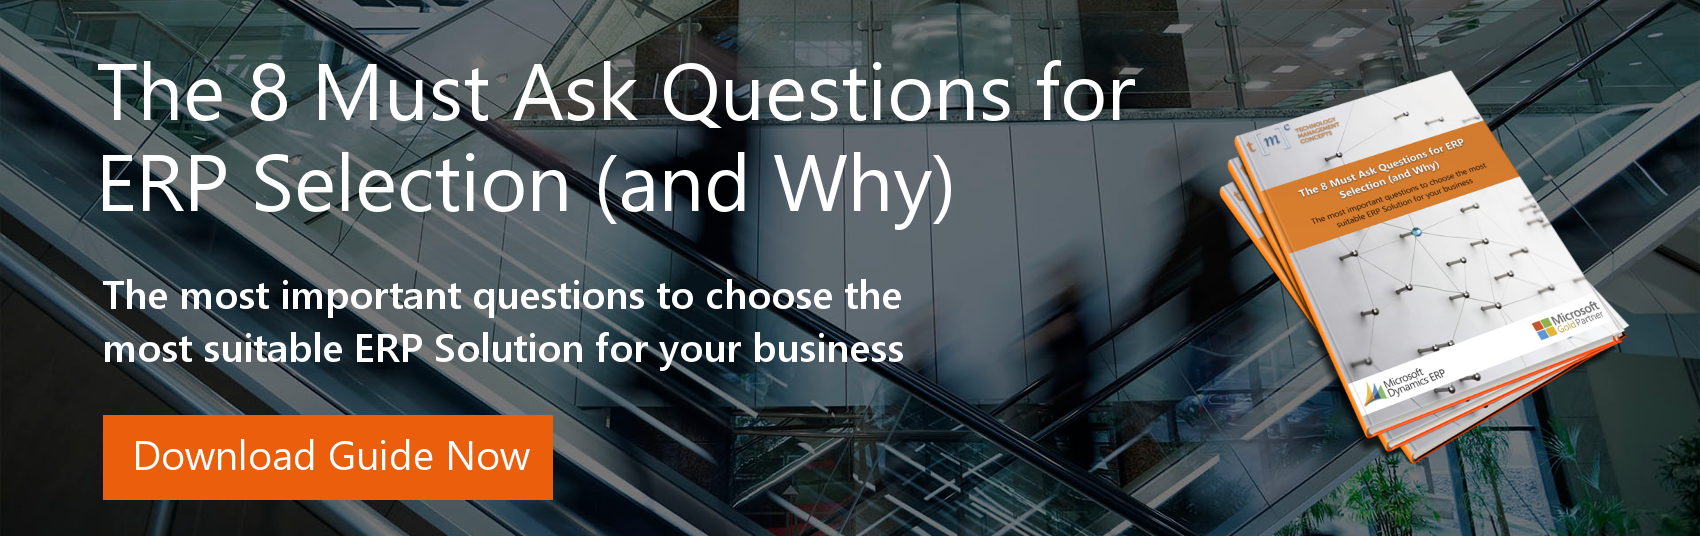 8 must ask questions for ERP selection (and why)